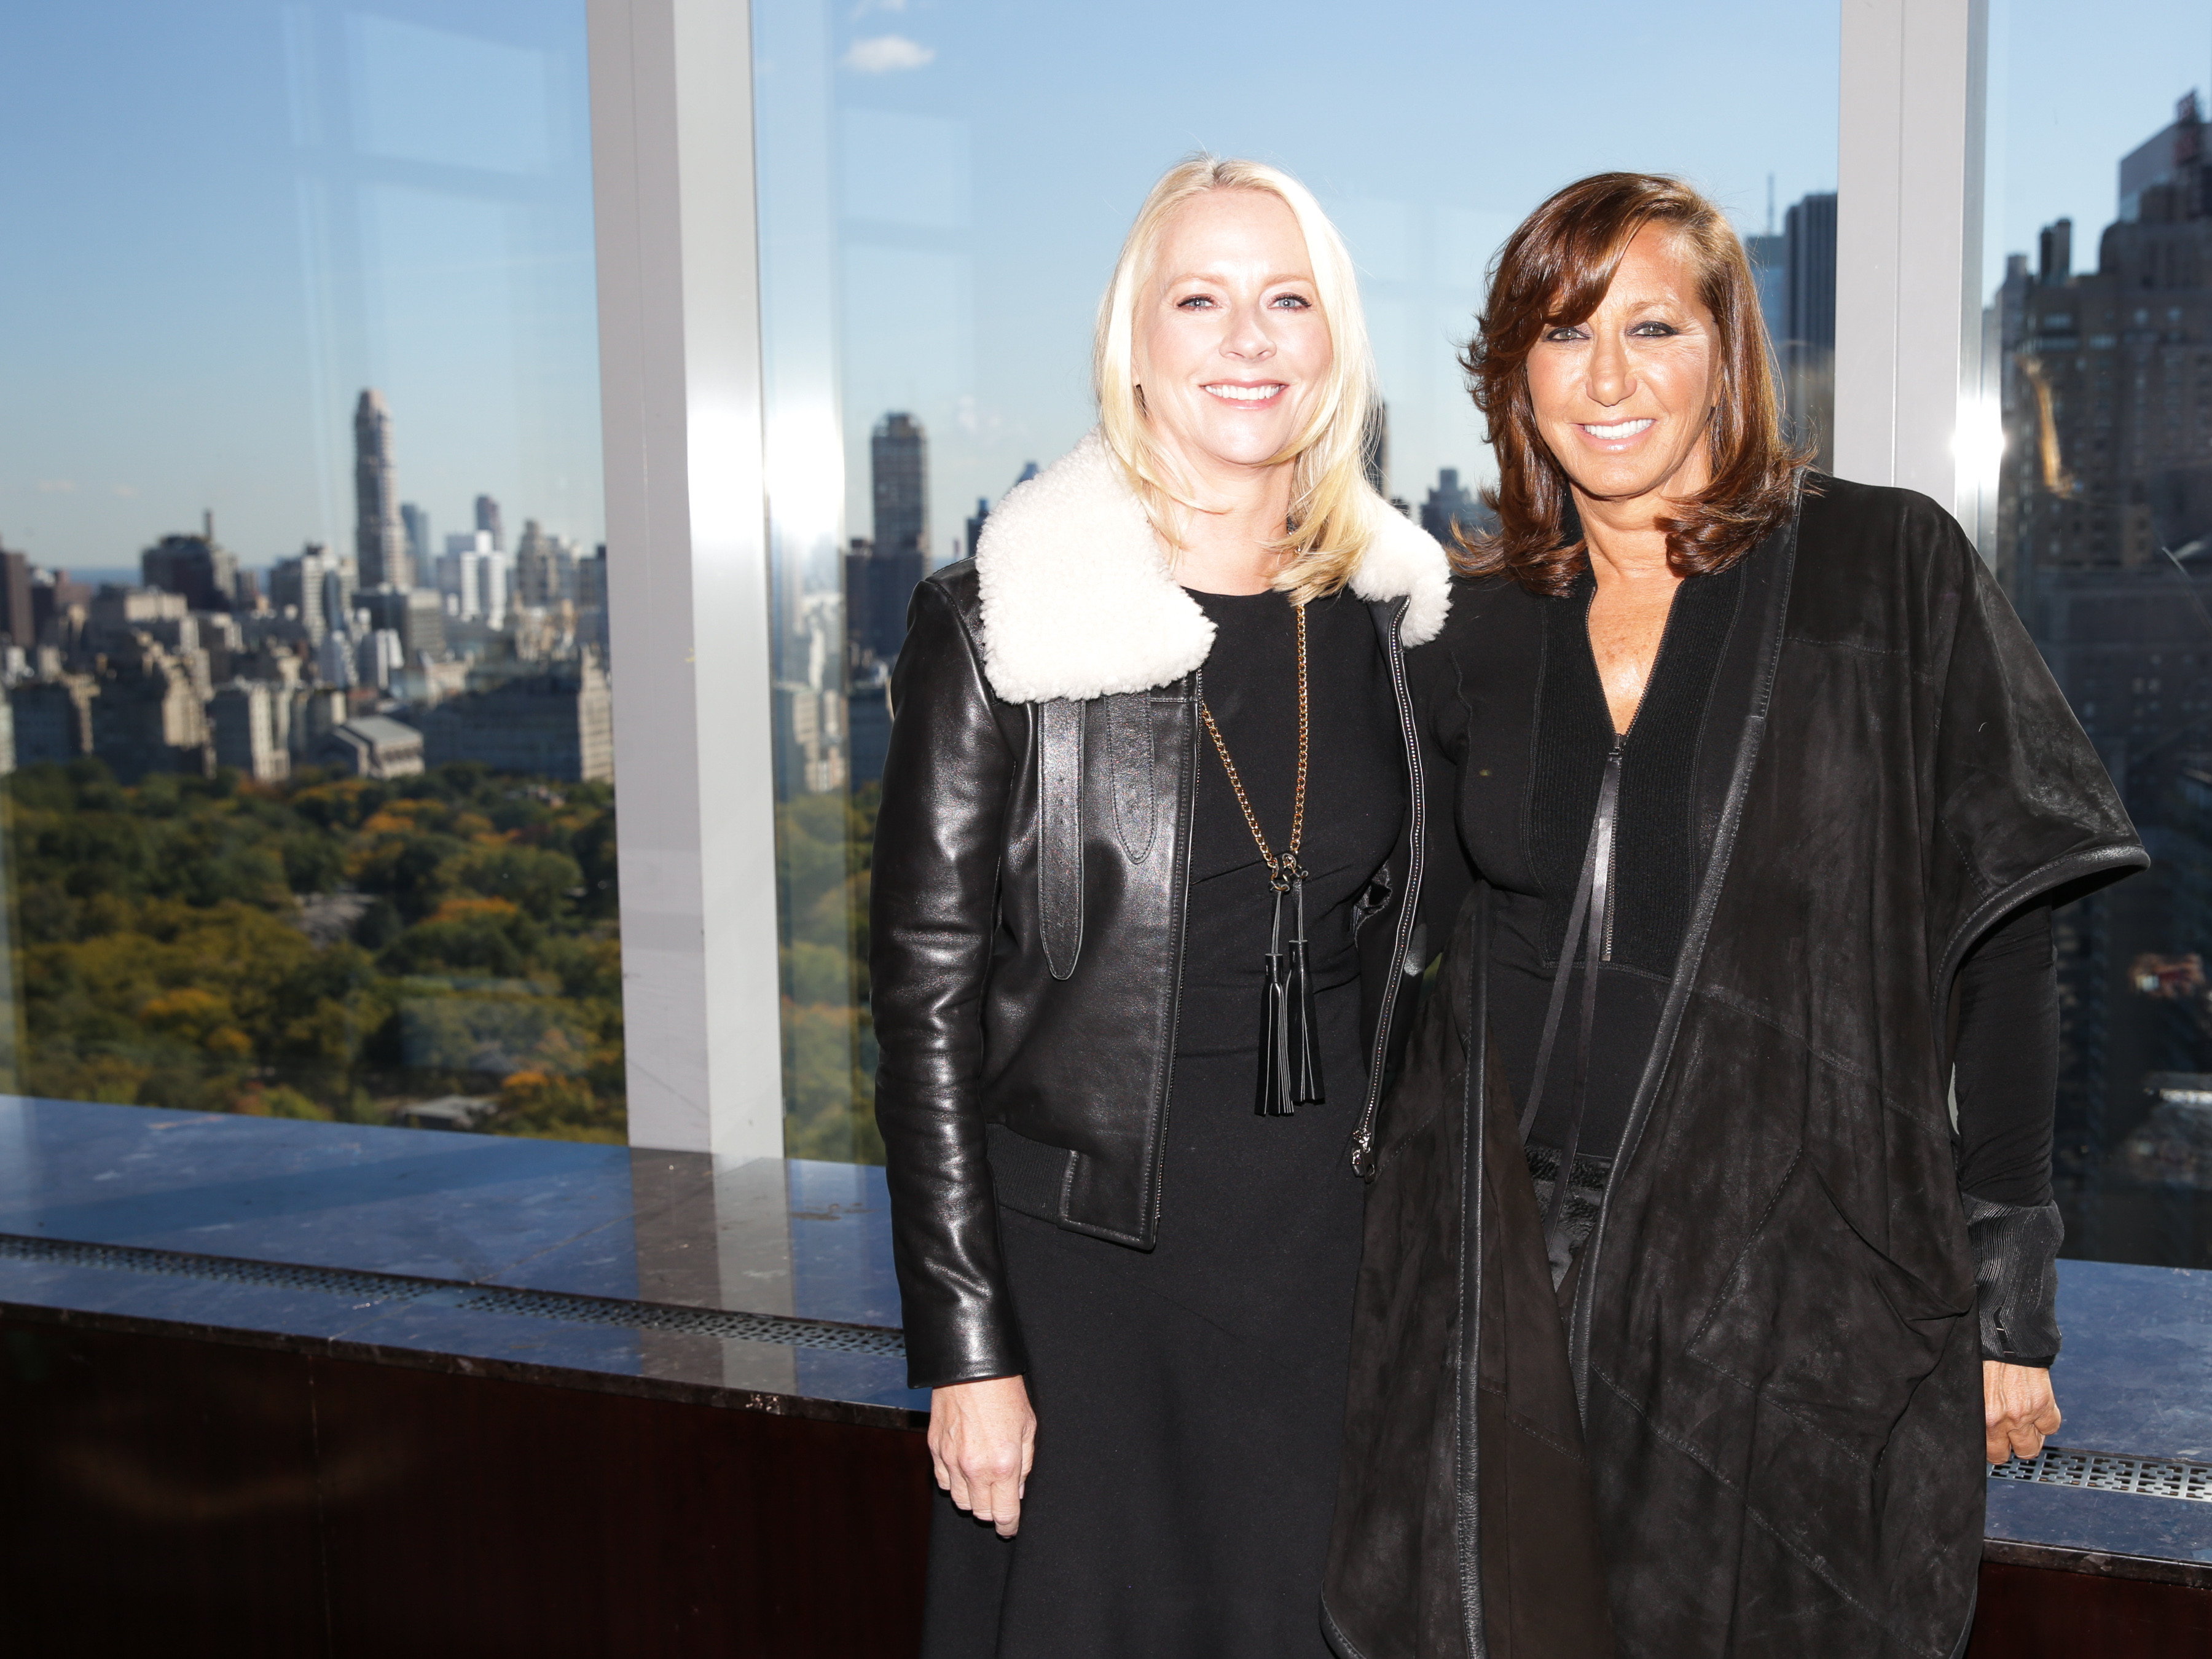 Cohen patti leaving donna karan advise dress in on every day in 2019